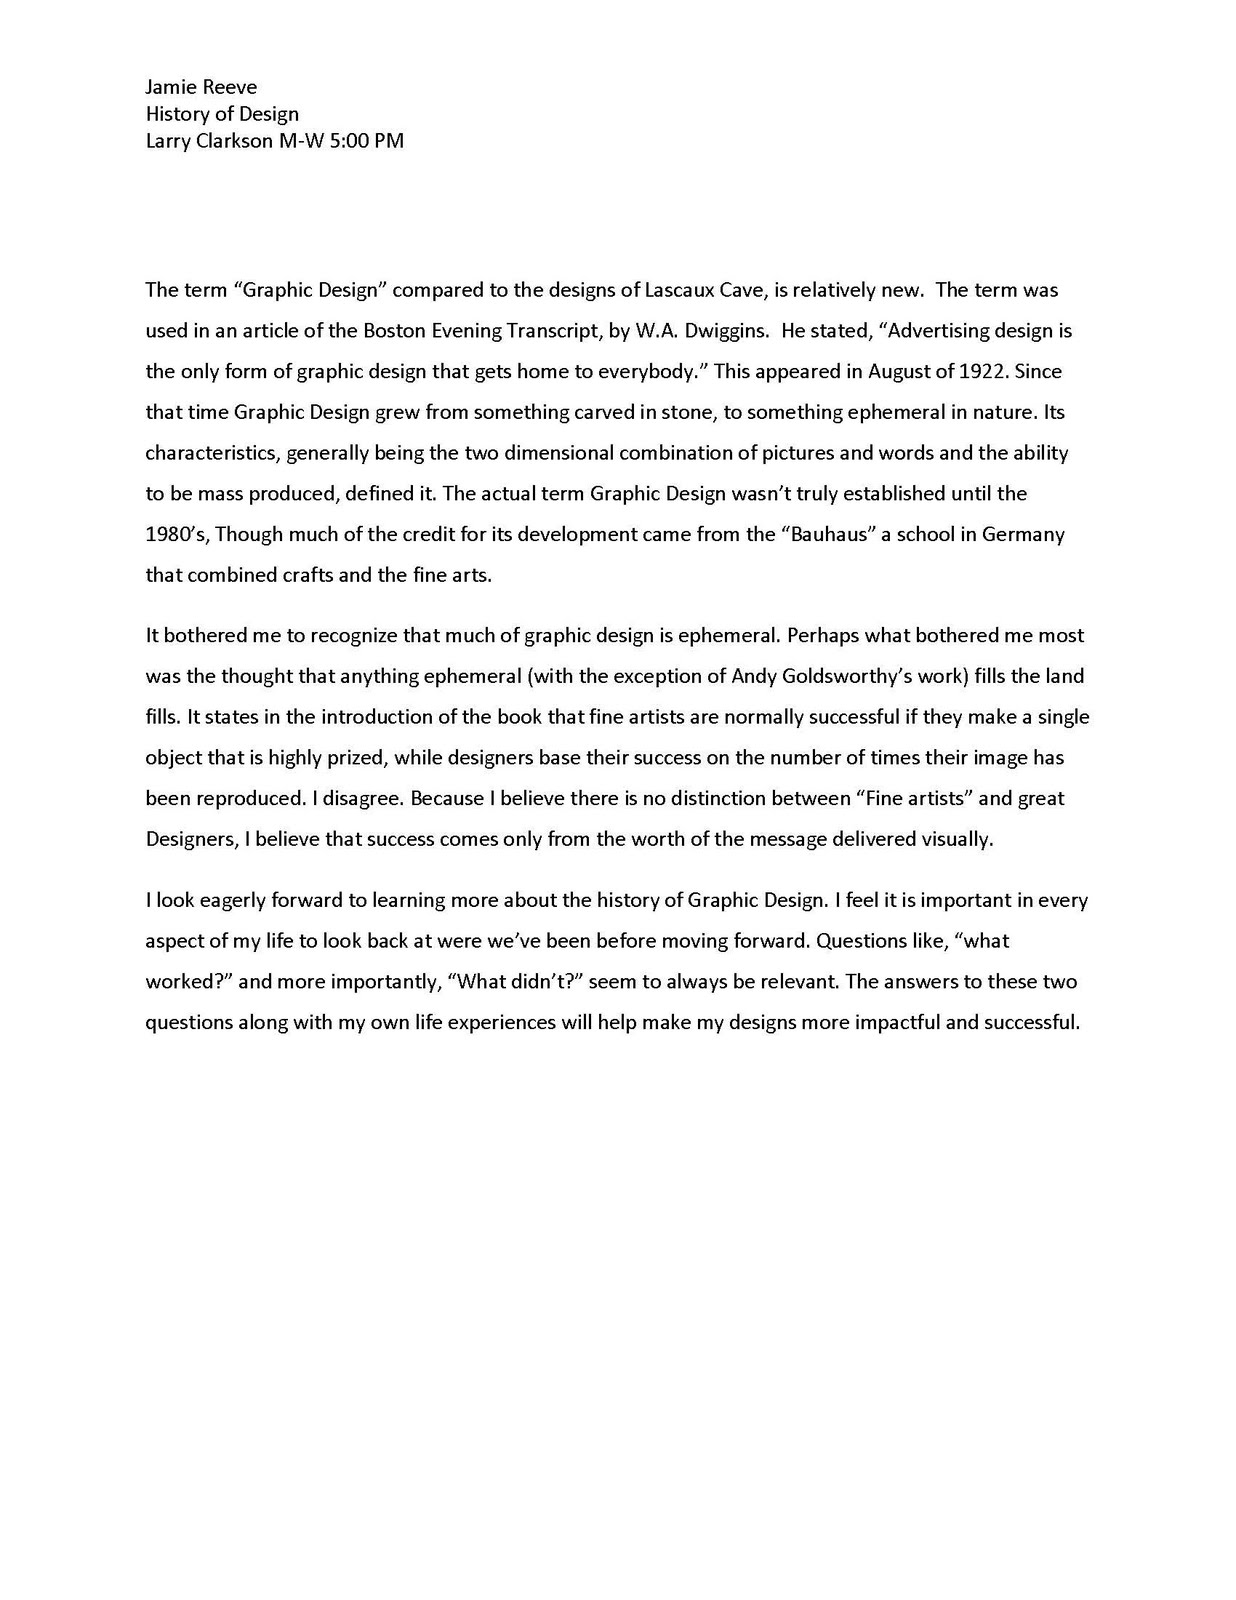 015 Essay1designhistory Page 2 Essay Example This I Believe Impressive Outline Full